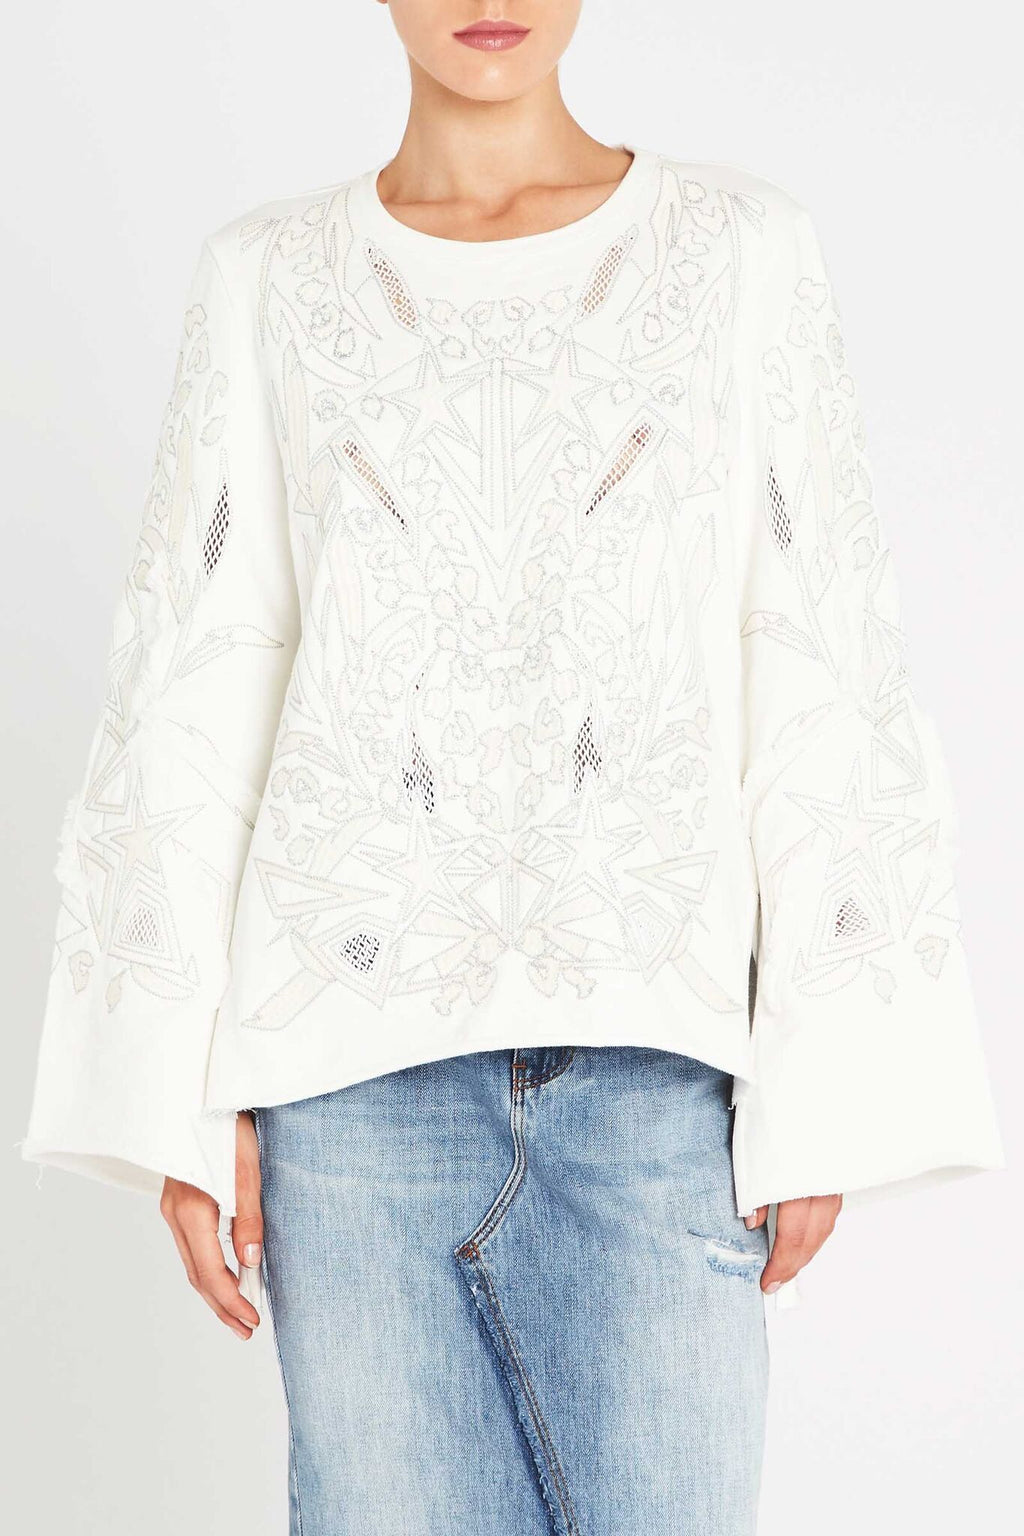 Sass and Bide Ancient Stars Sweater Top